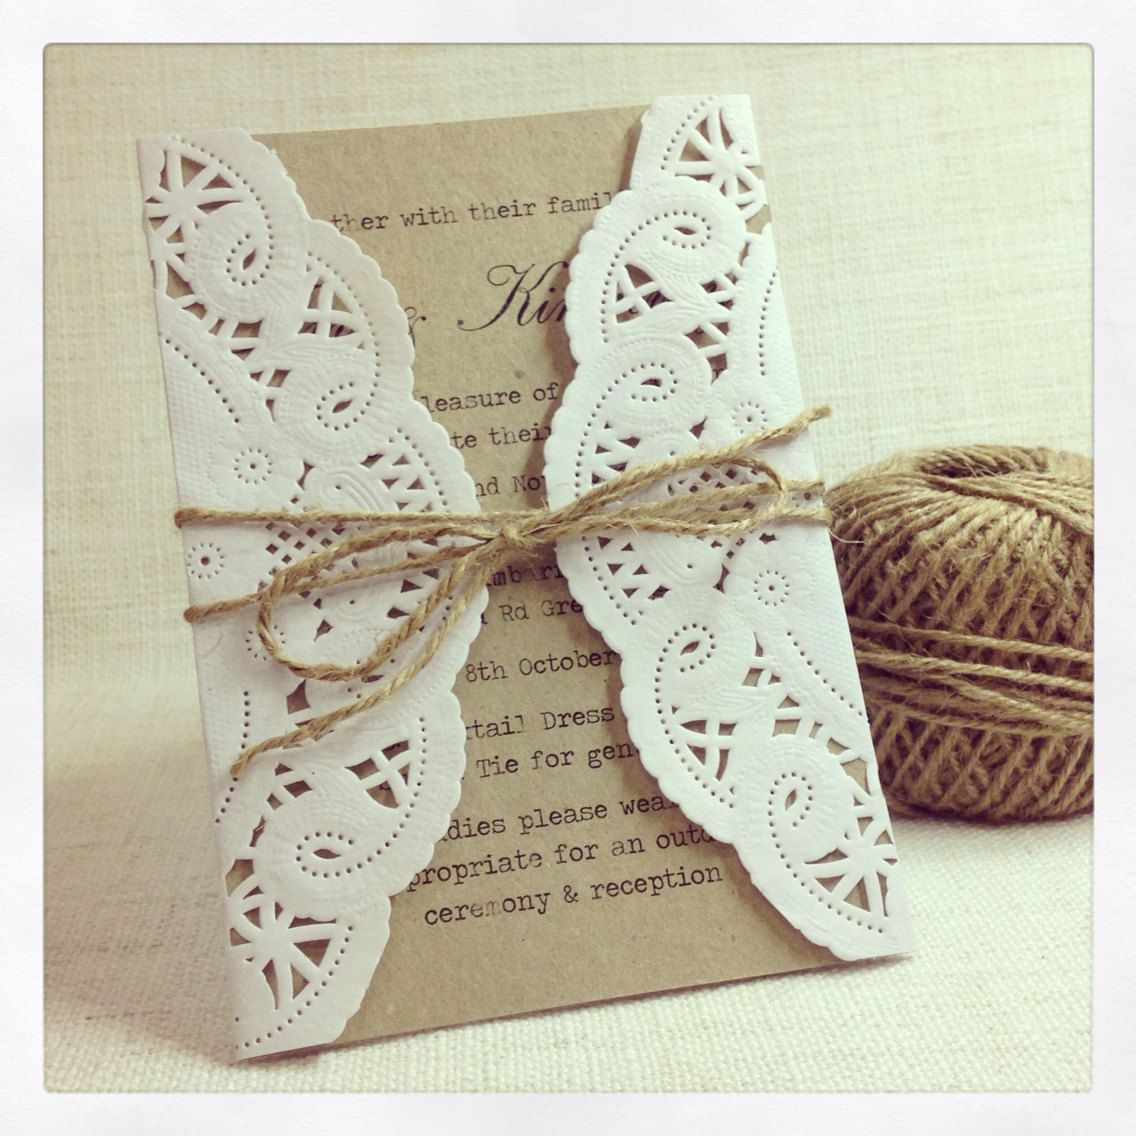 Doily wedding invitation - rustic chic wedding invitation sample ...